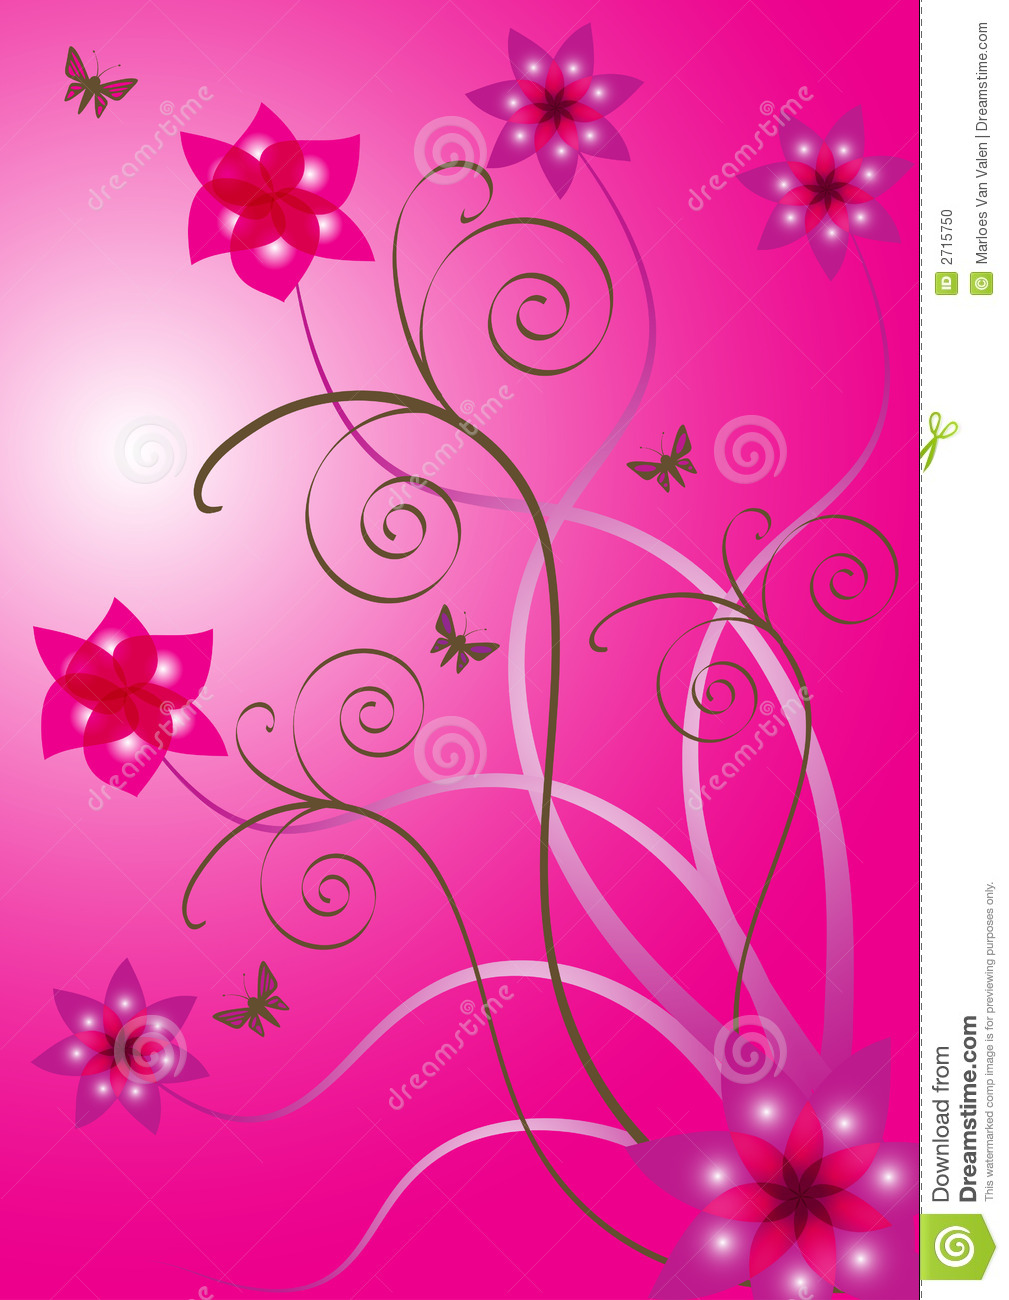 Beautiful flower desig...Clipart Flowers And Butterflies Border